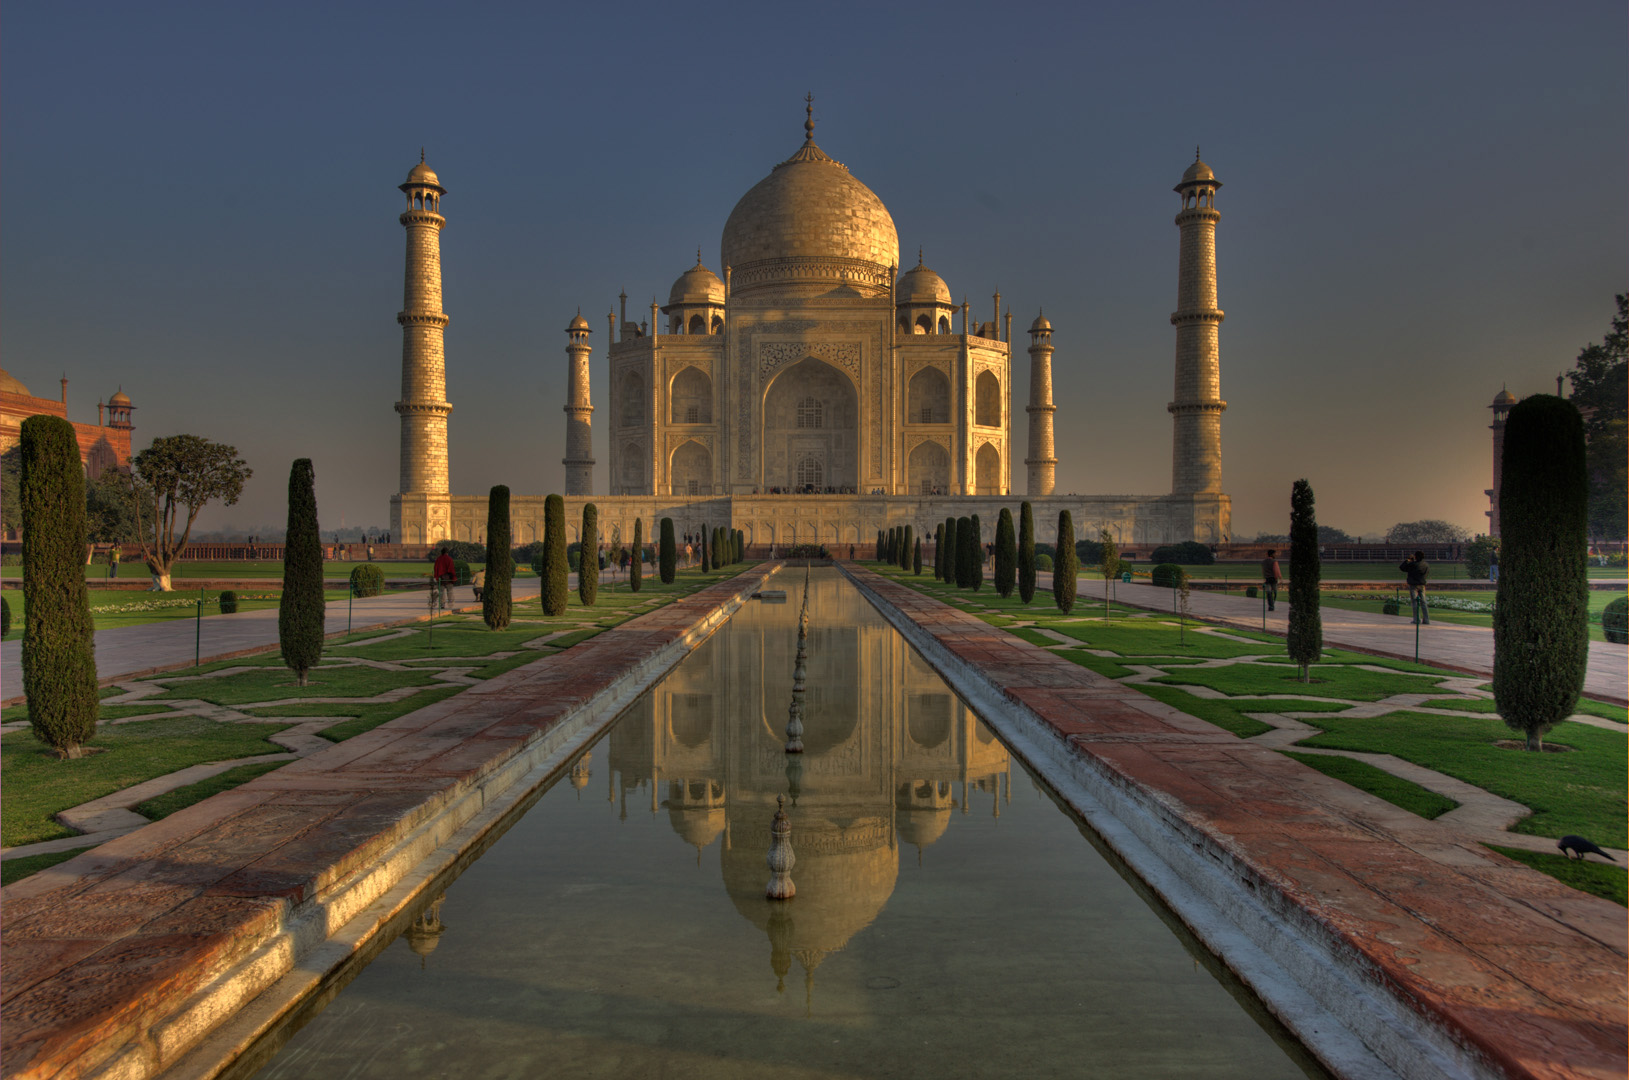 The Taj Mahal was inscripted in 1983. Photo by Louis Vest.